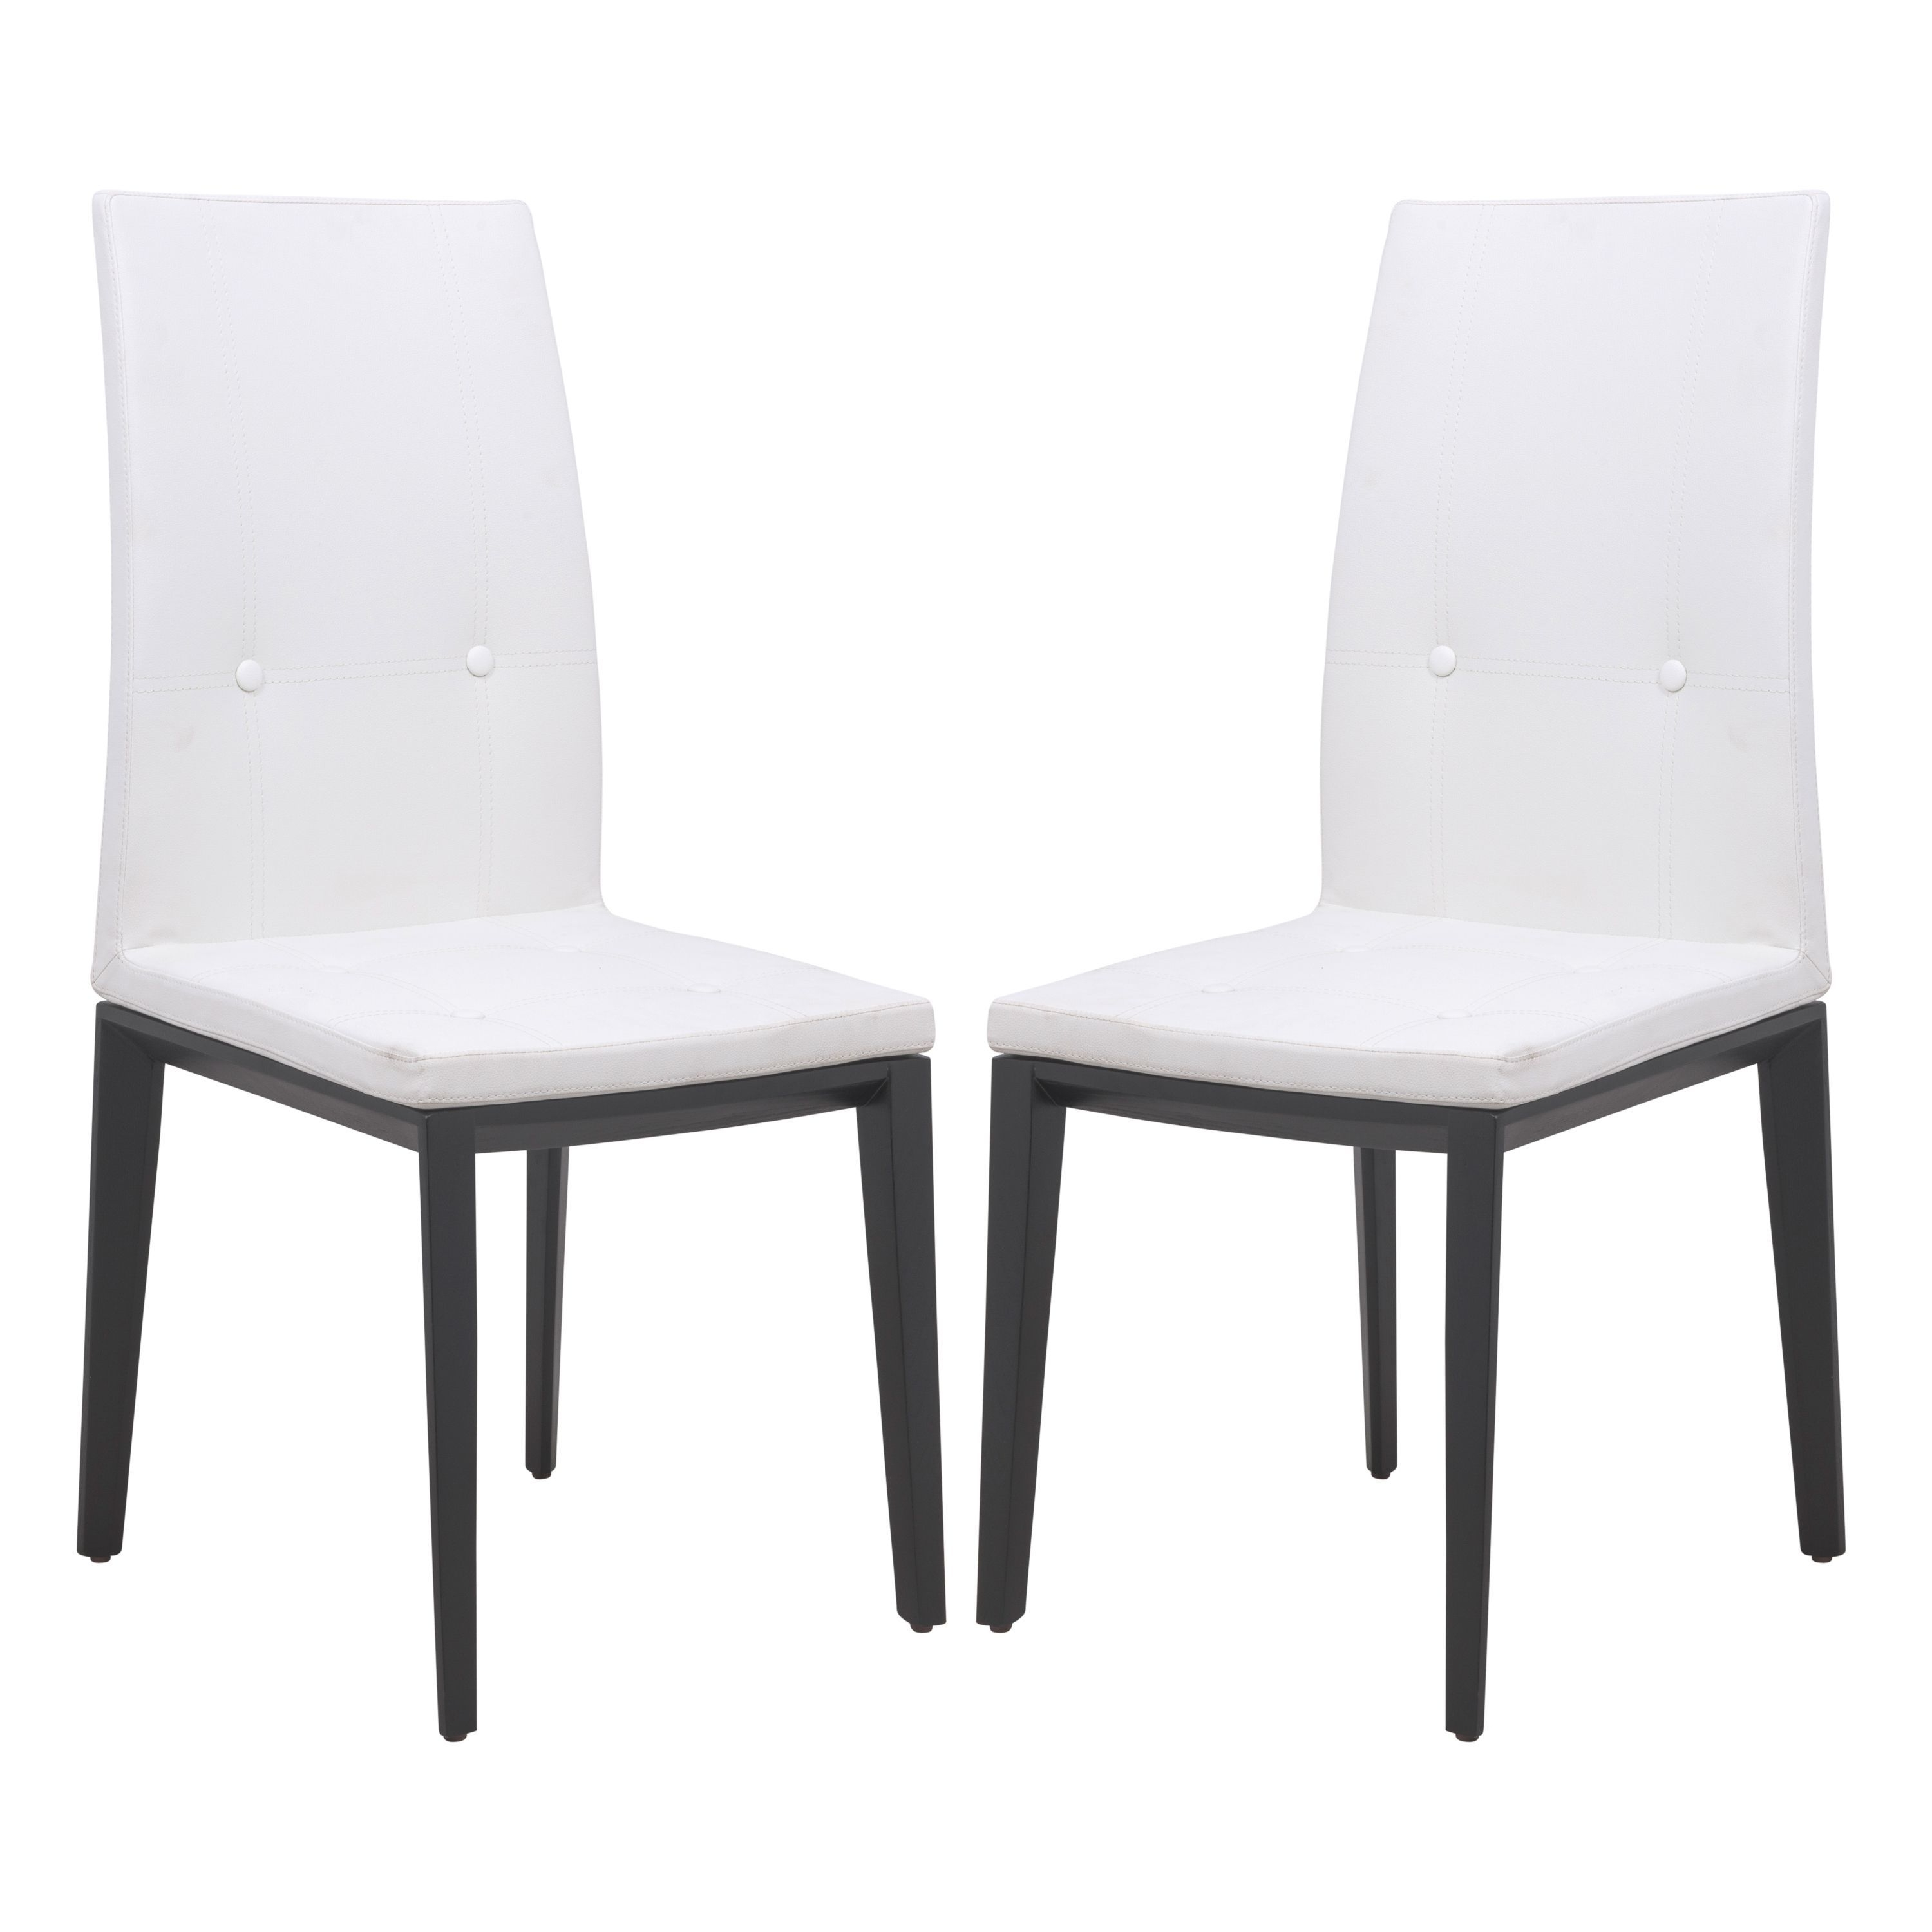 White Leather Dining Room Chairs Within Famous Leisuremod Somers White Faux Leather Dining Chair (Set Of 2) (Dining (View 13 of 25)